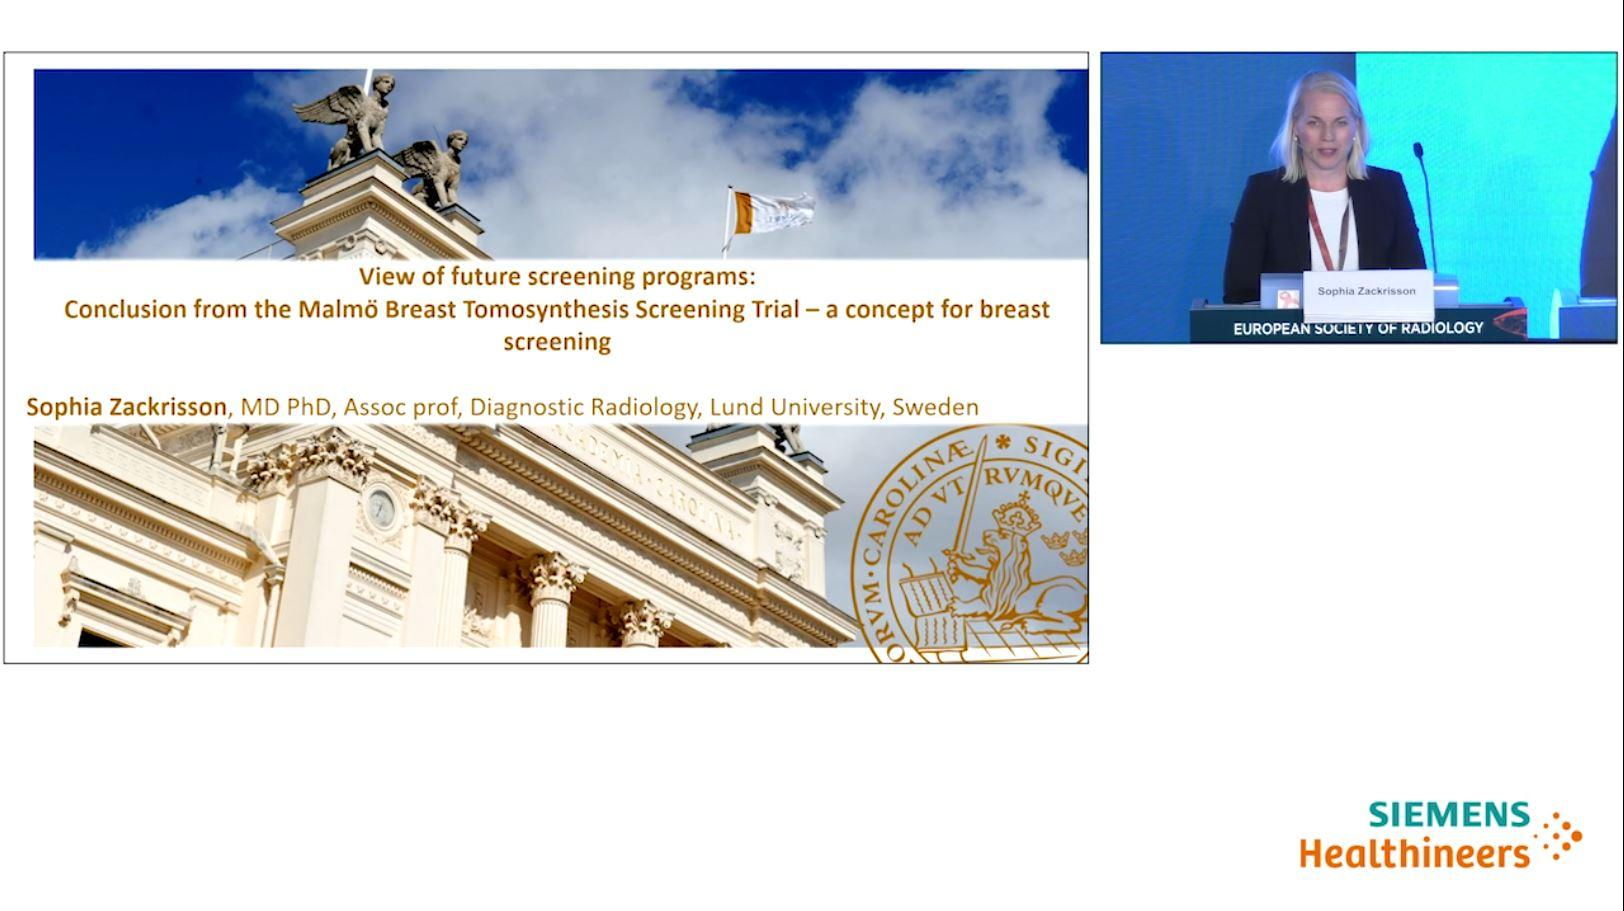 View of future screening programs: Conclusion from the Malmö Breast Tomosynthesis Screening Trial – a concept for breast screening